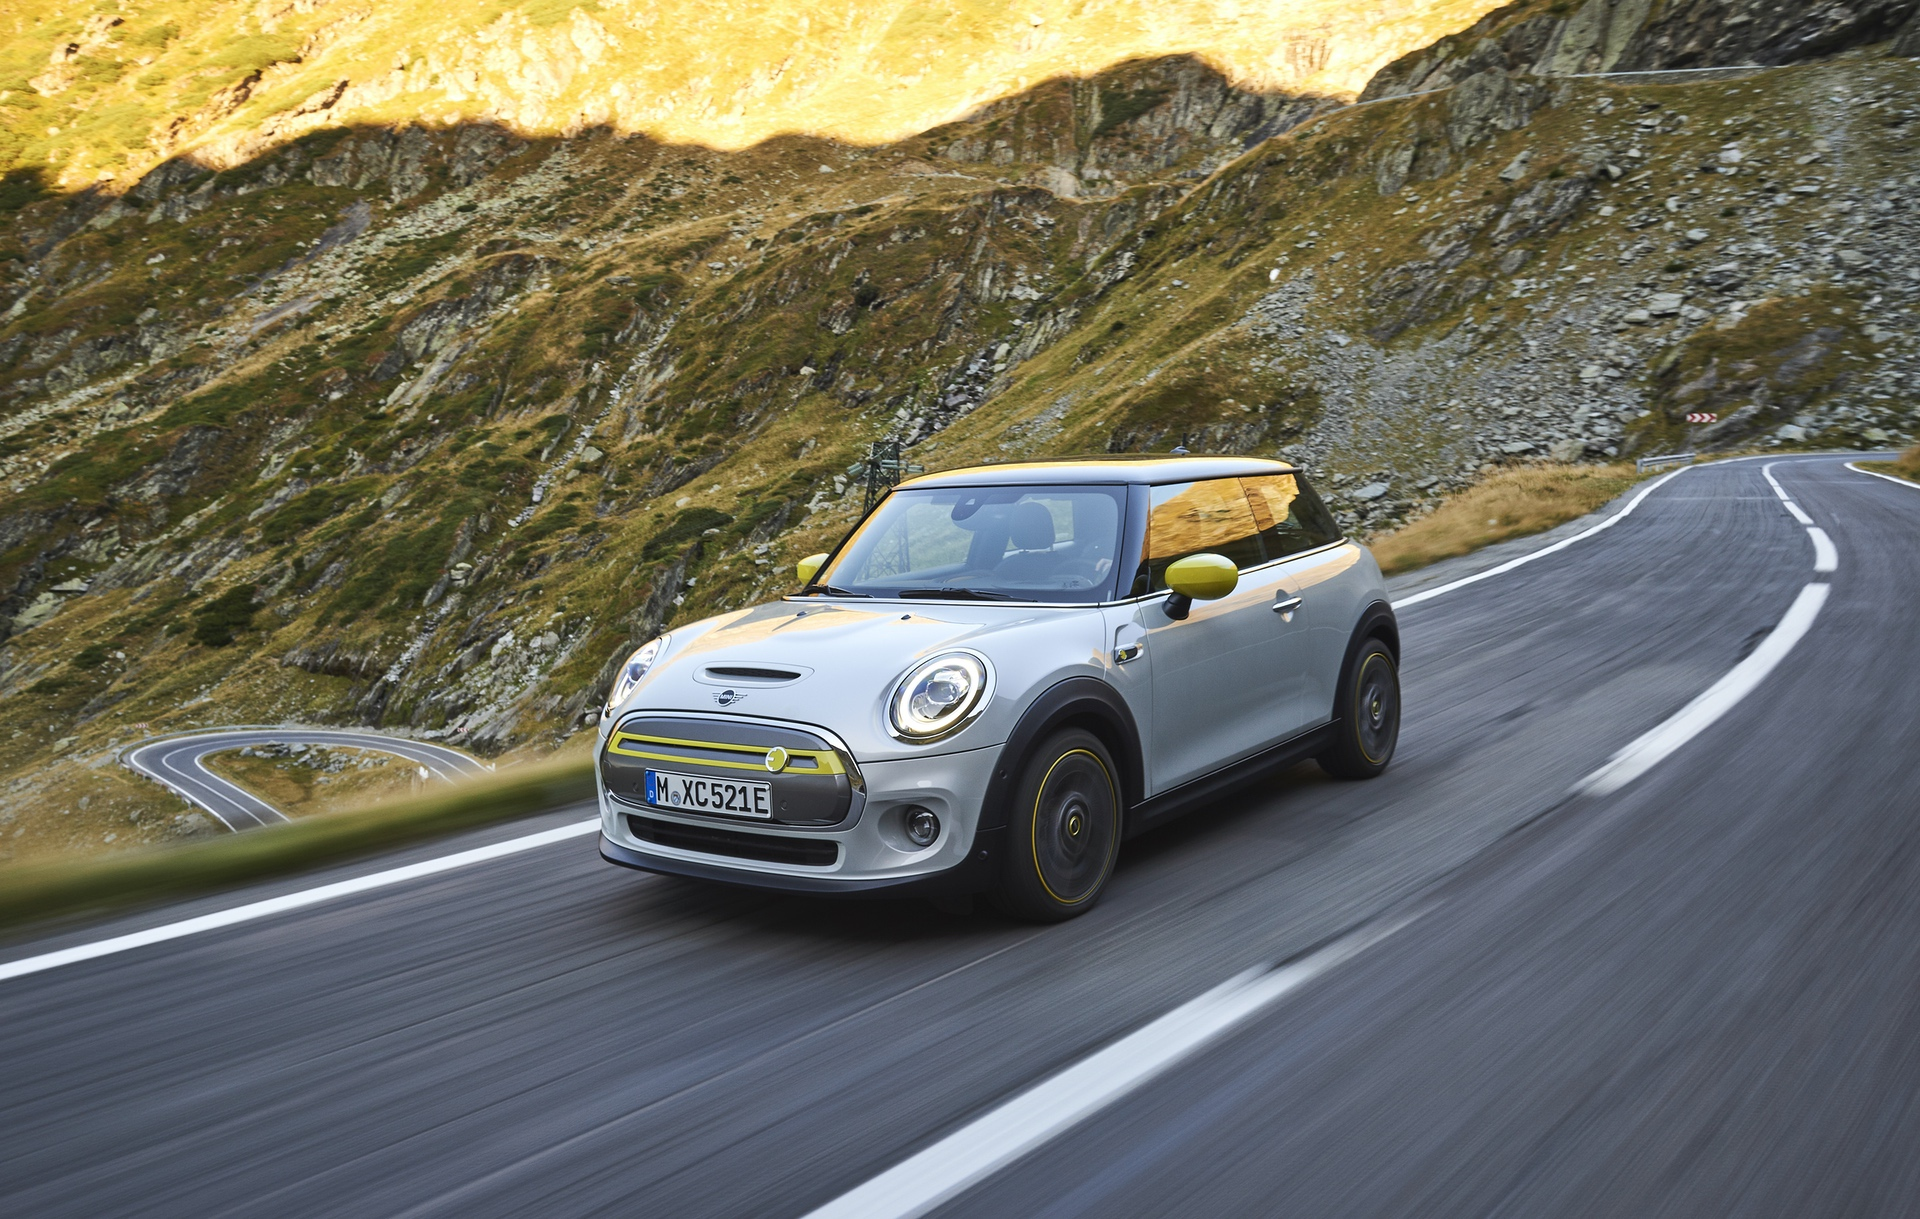 Video: MINI USA gets new promo, focused on driving